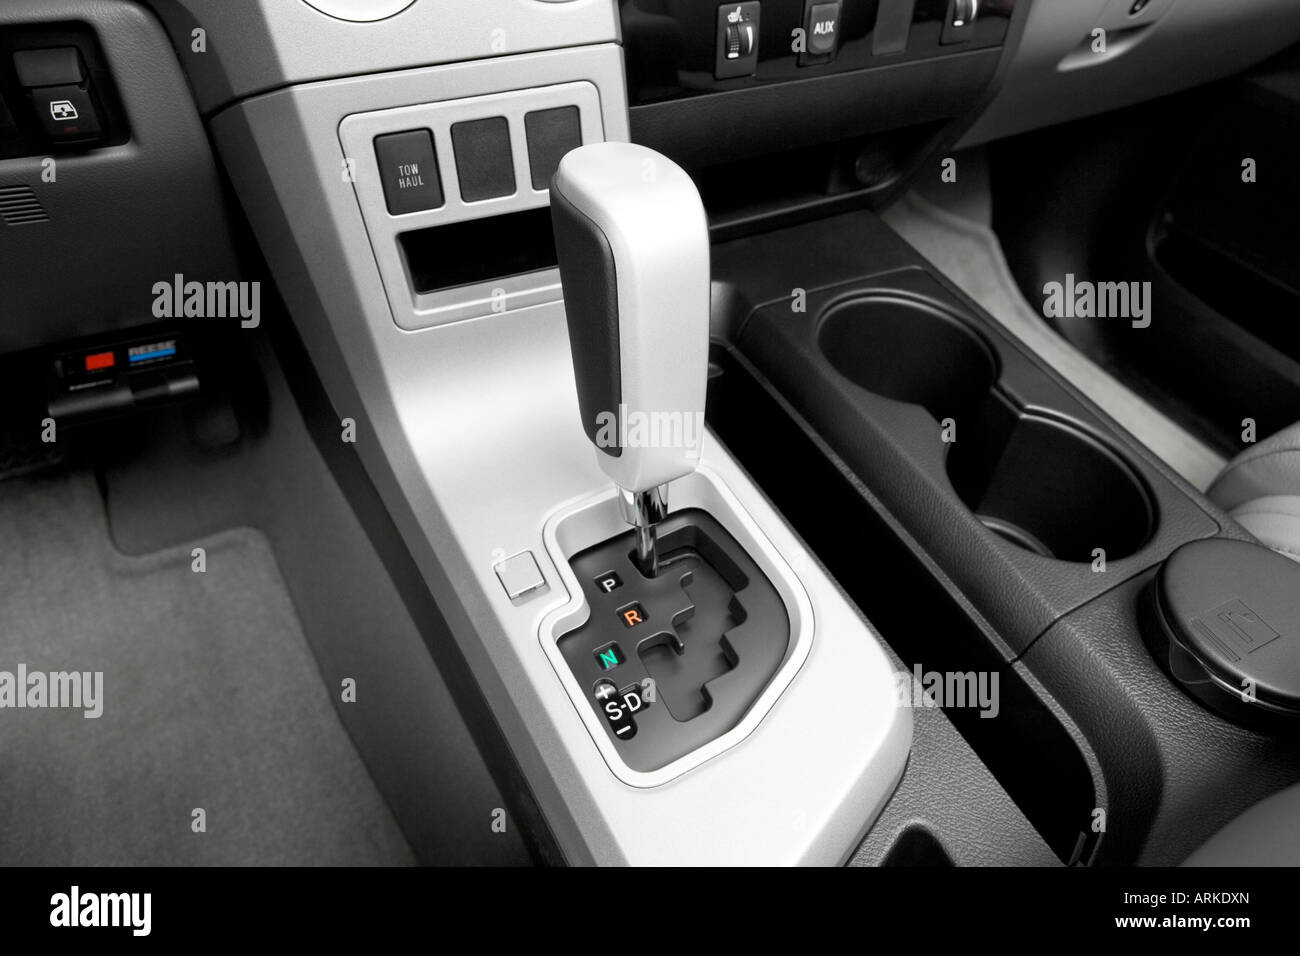 2008 Toyota Tacoma 4x4 >> 2008 Toyota Tundra Limited in Silver - Gear shifter/center console Stock Photo, Royalty Free ...